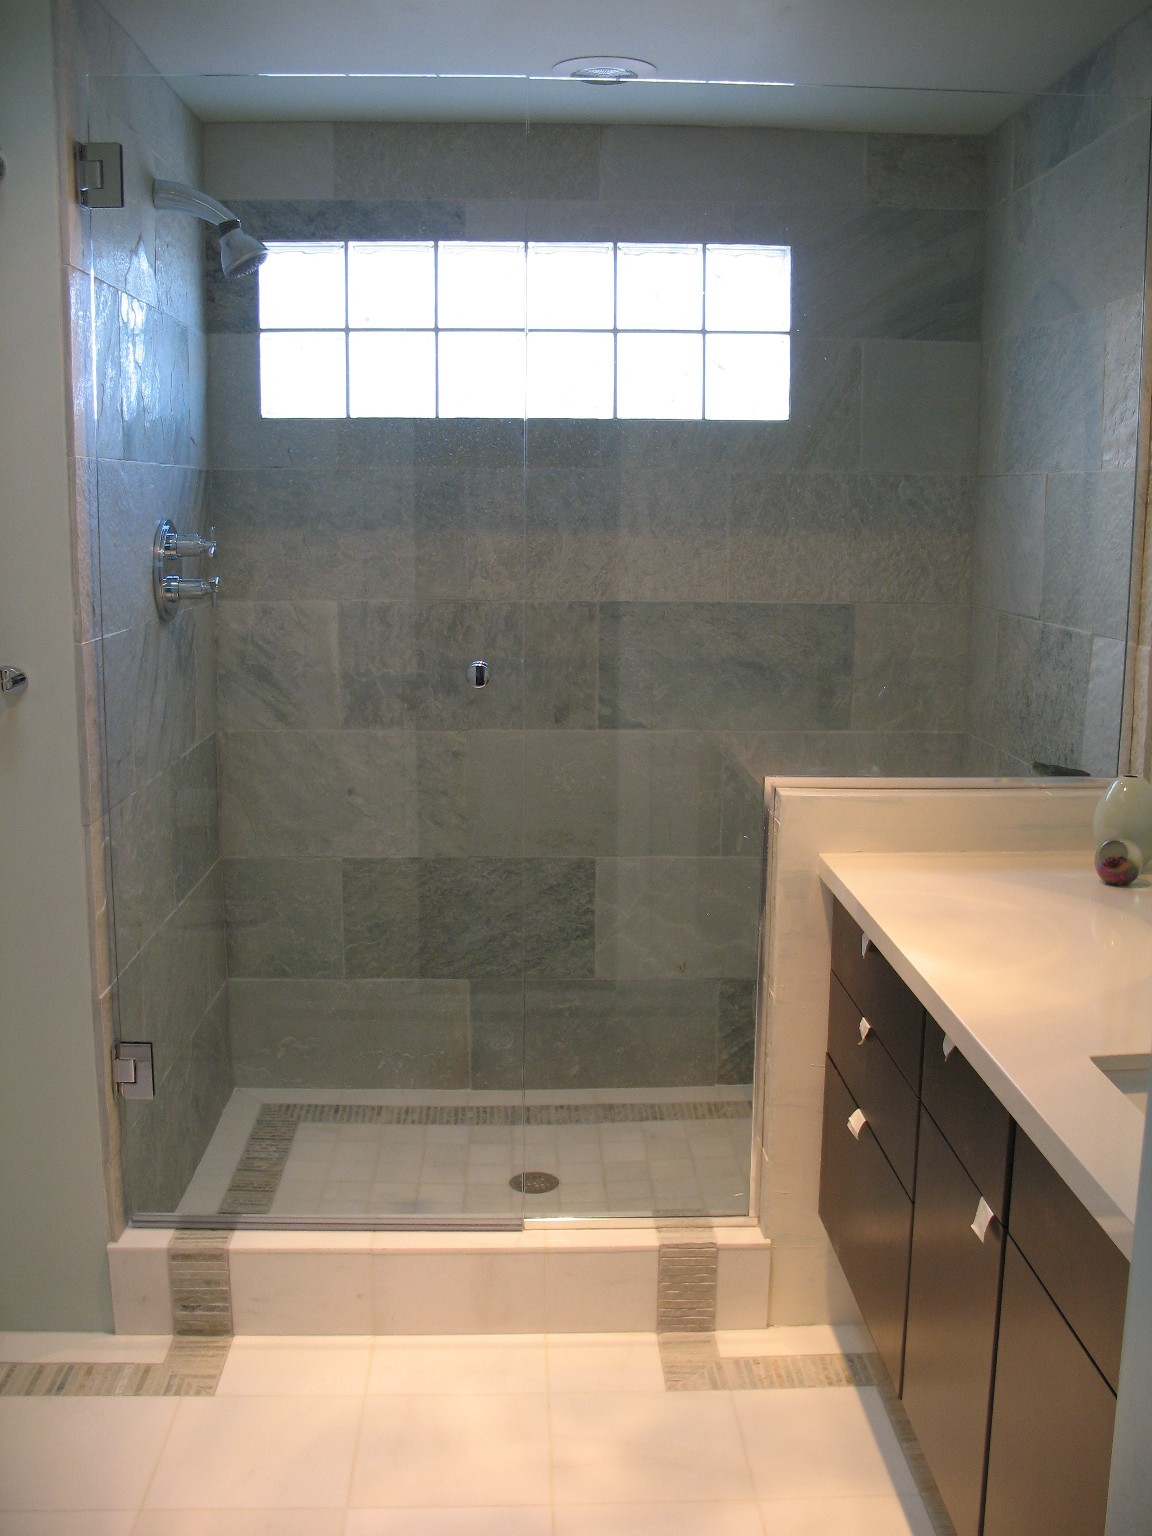 30 shower tile ideas on a budget for 7x8 bathroom ideas